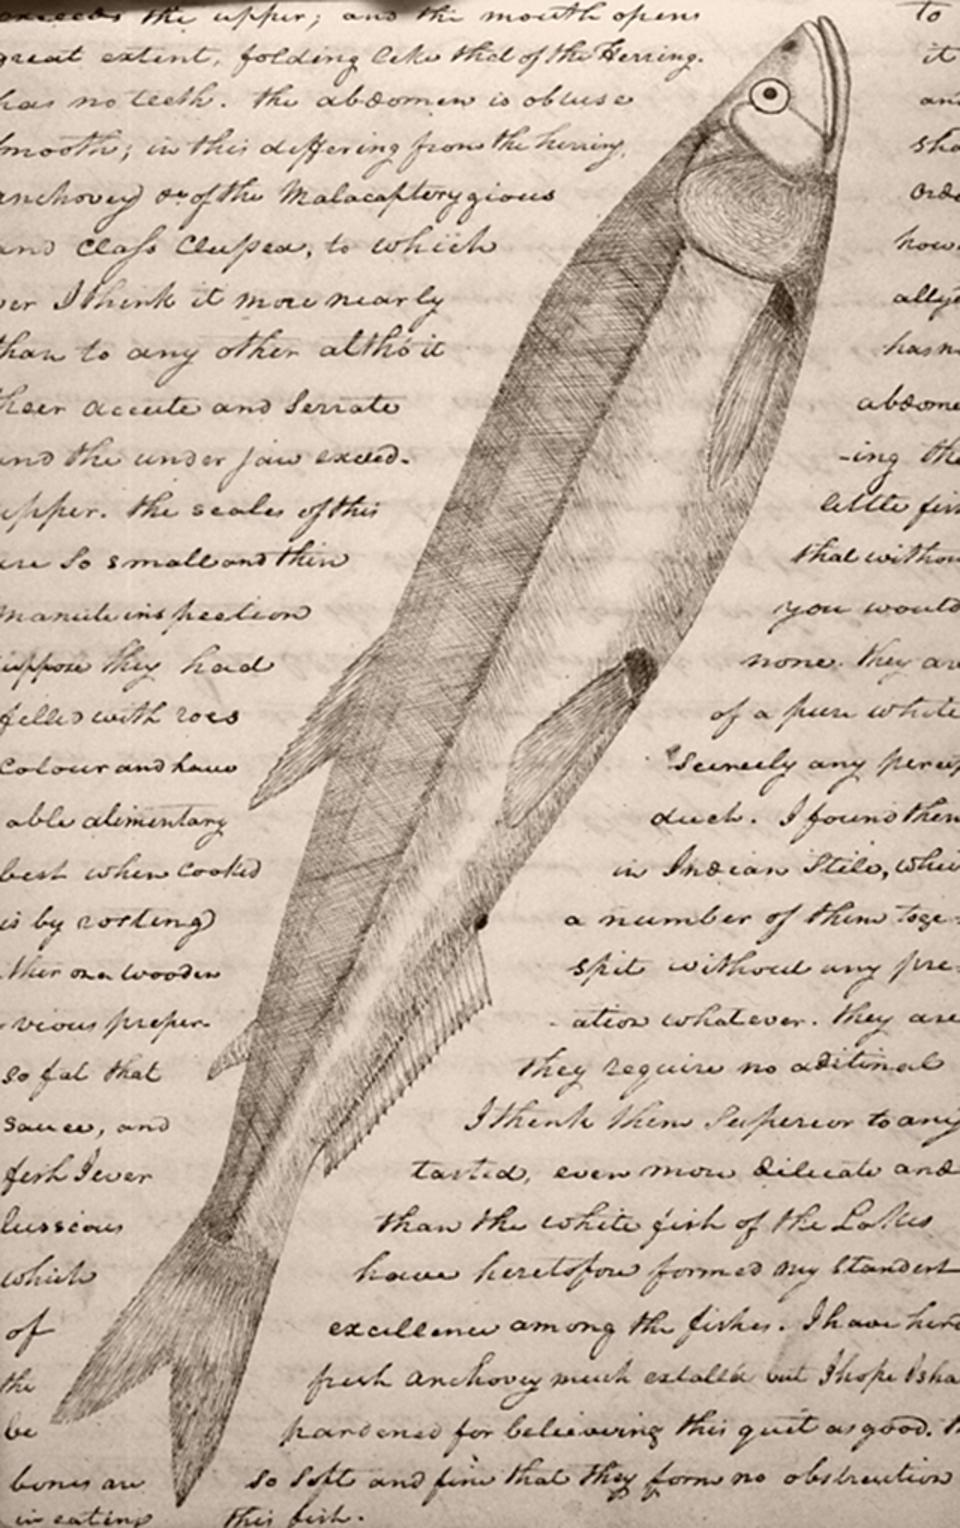 Euchalon. Drawing by Meriwether Lewis, from the diaries of the Lewis and Clark Expedition through Montana and other western states, February 25, 1806.